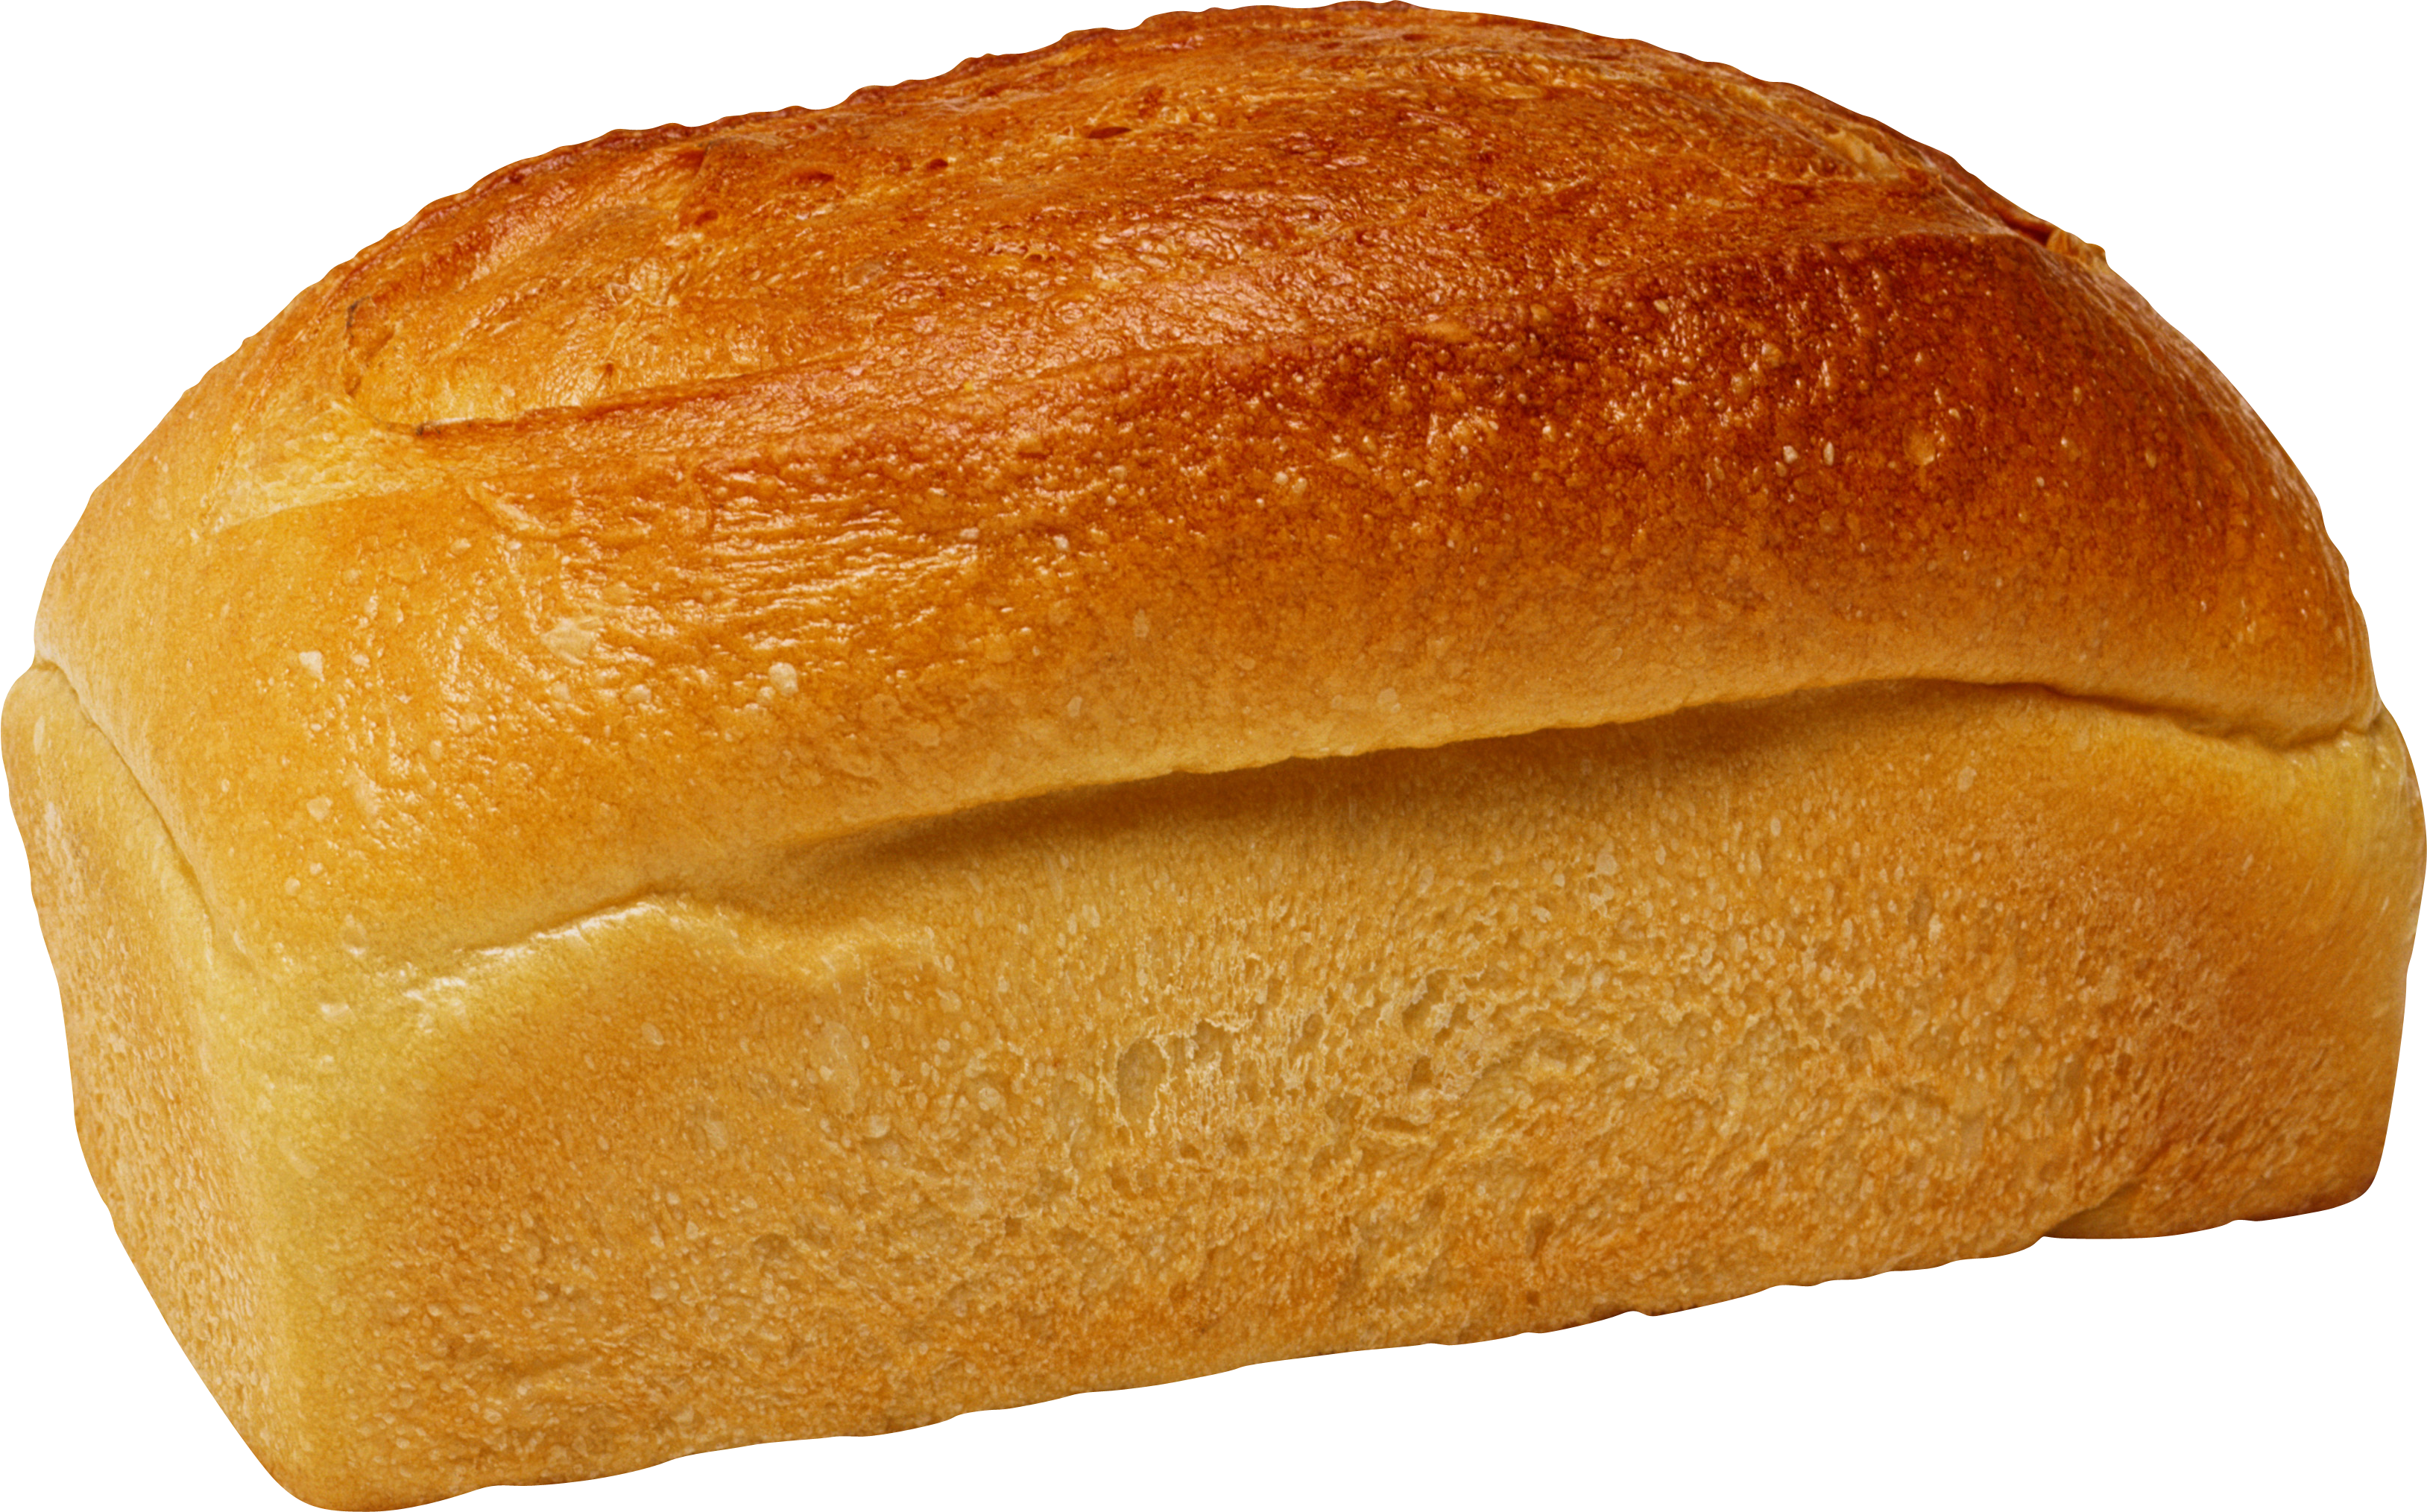 Png image . Clipart bread yeast bread